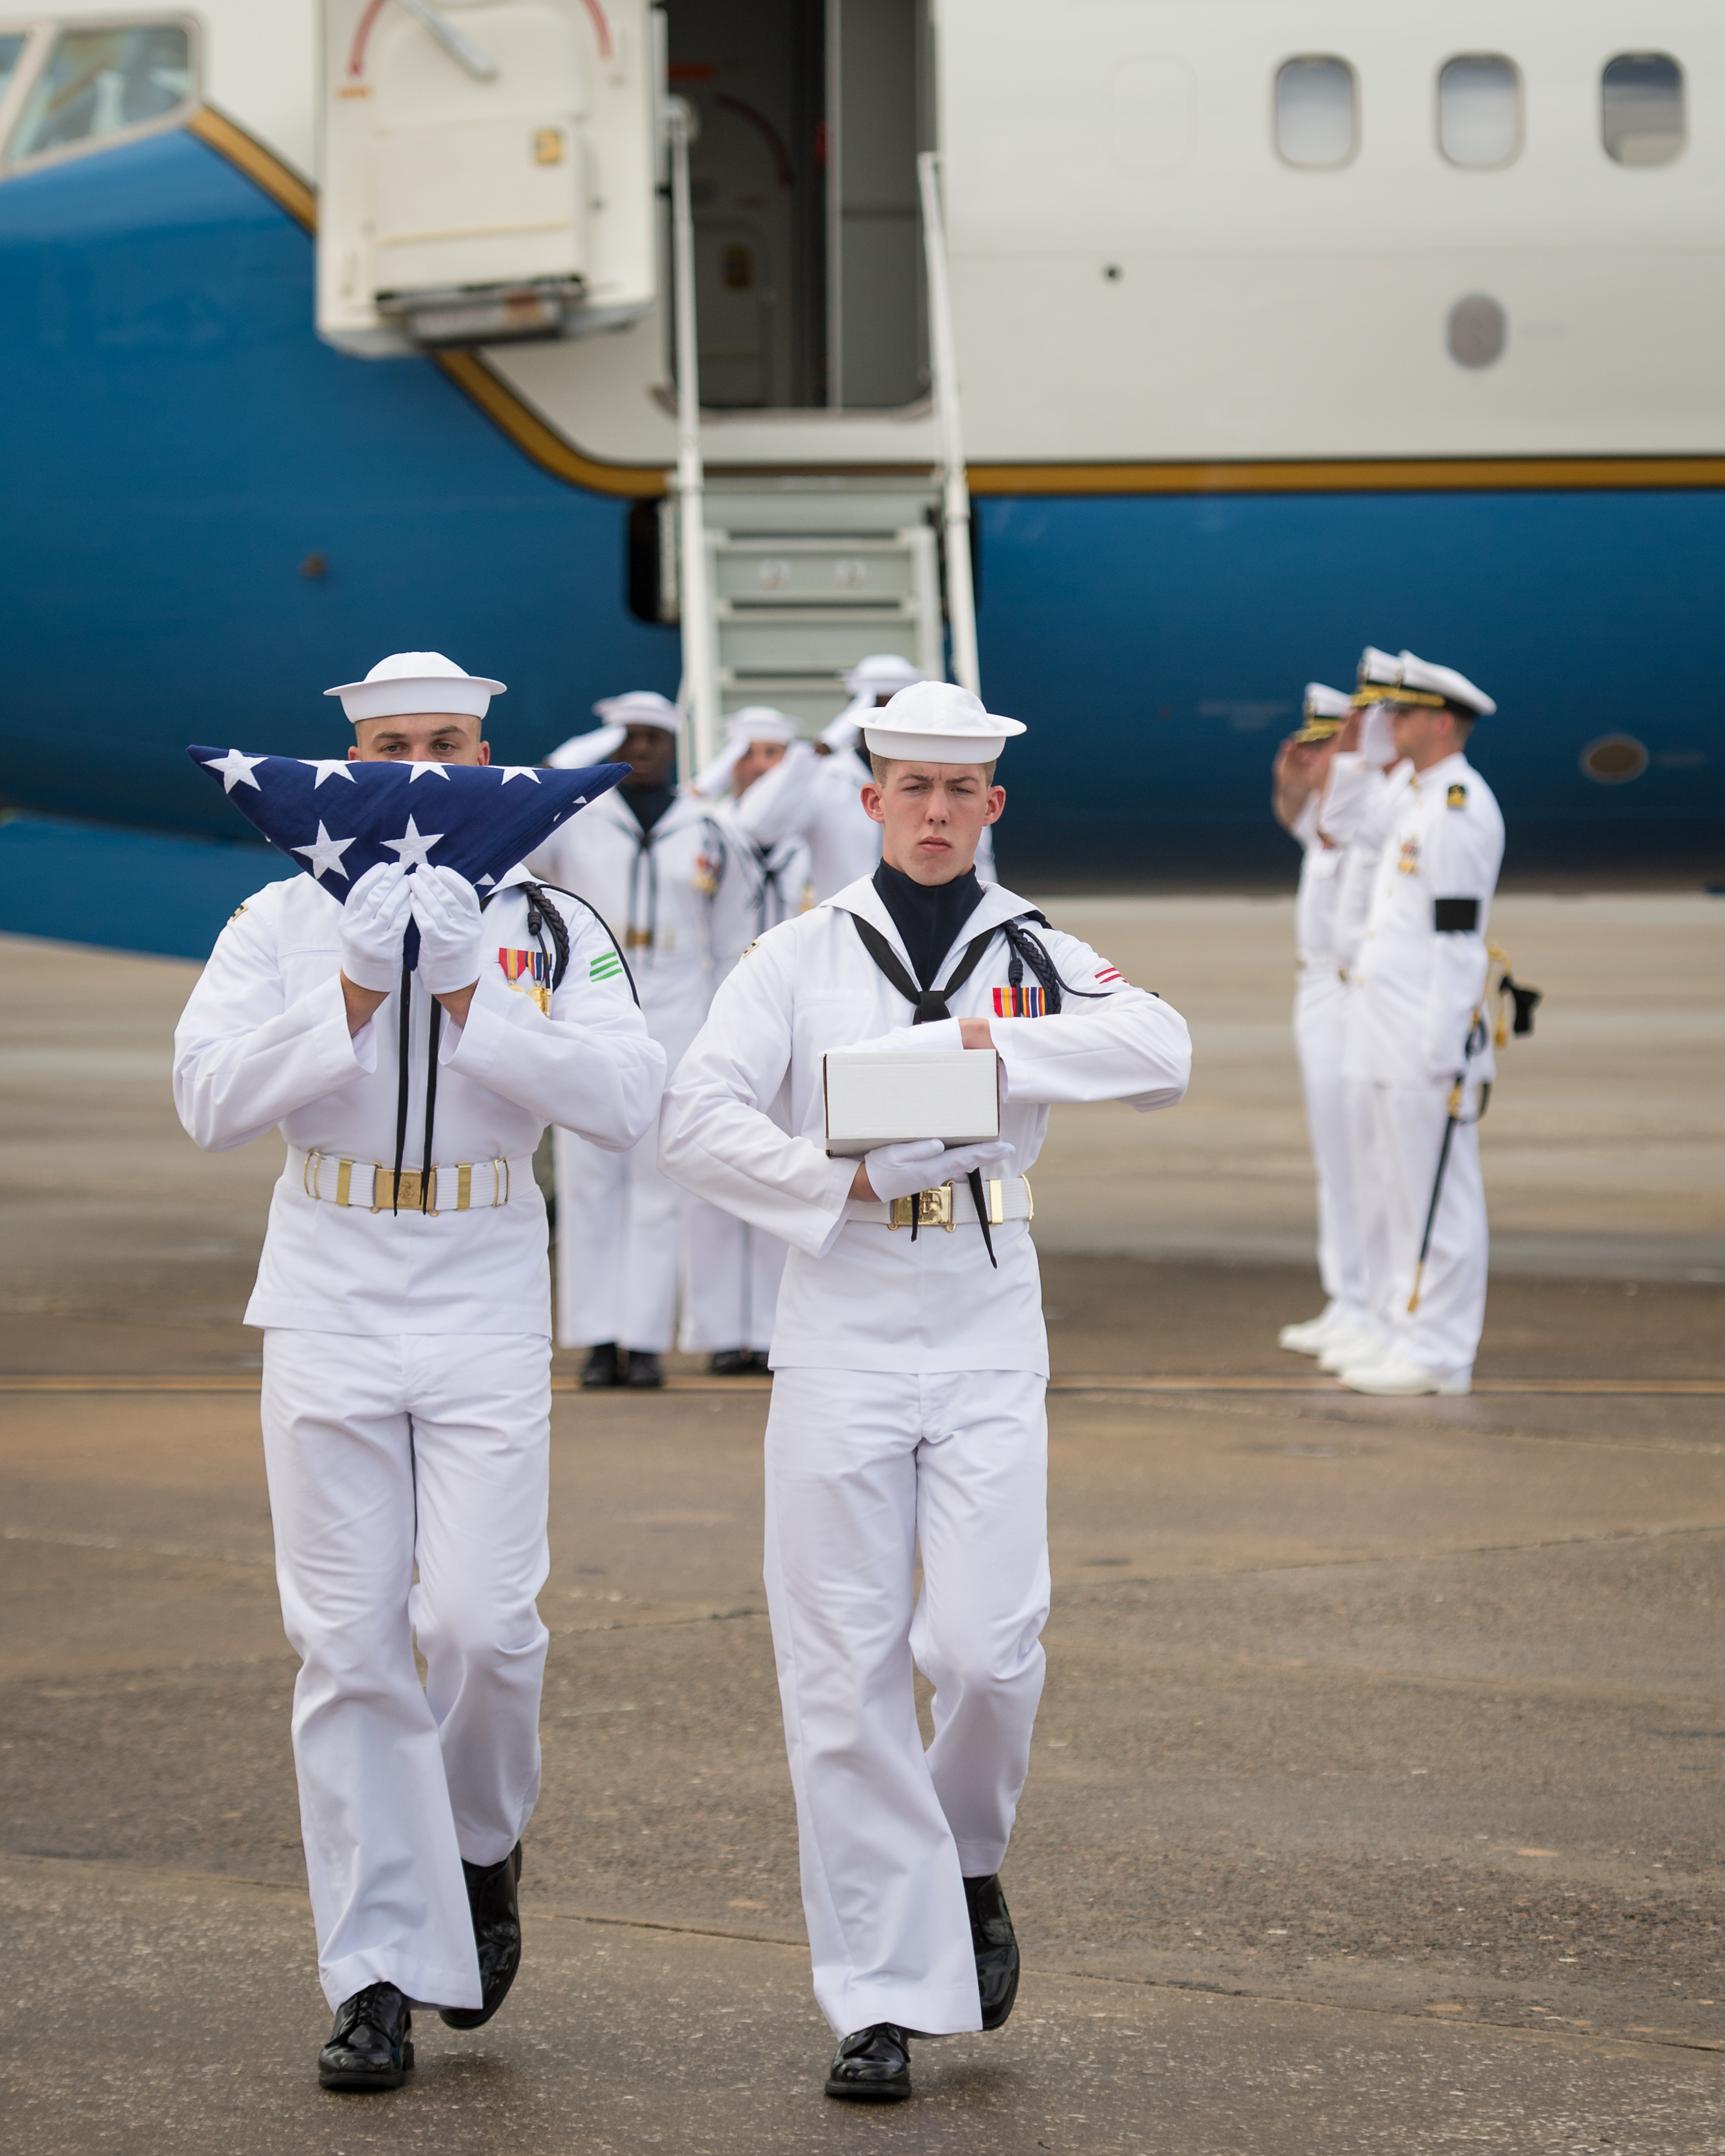 neil armstrong burial - photo #6